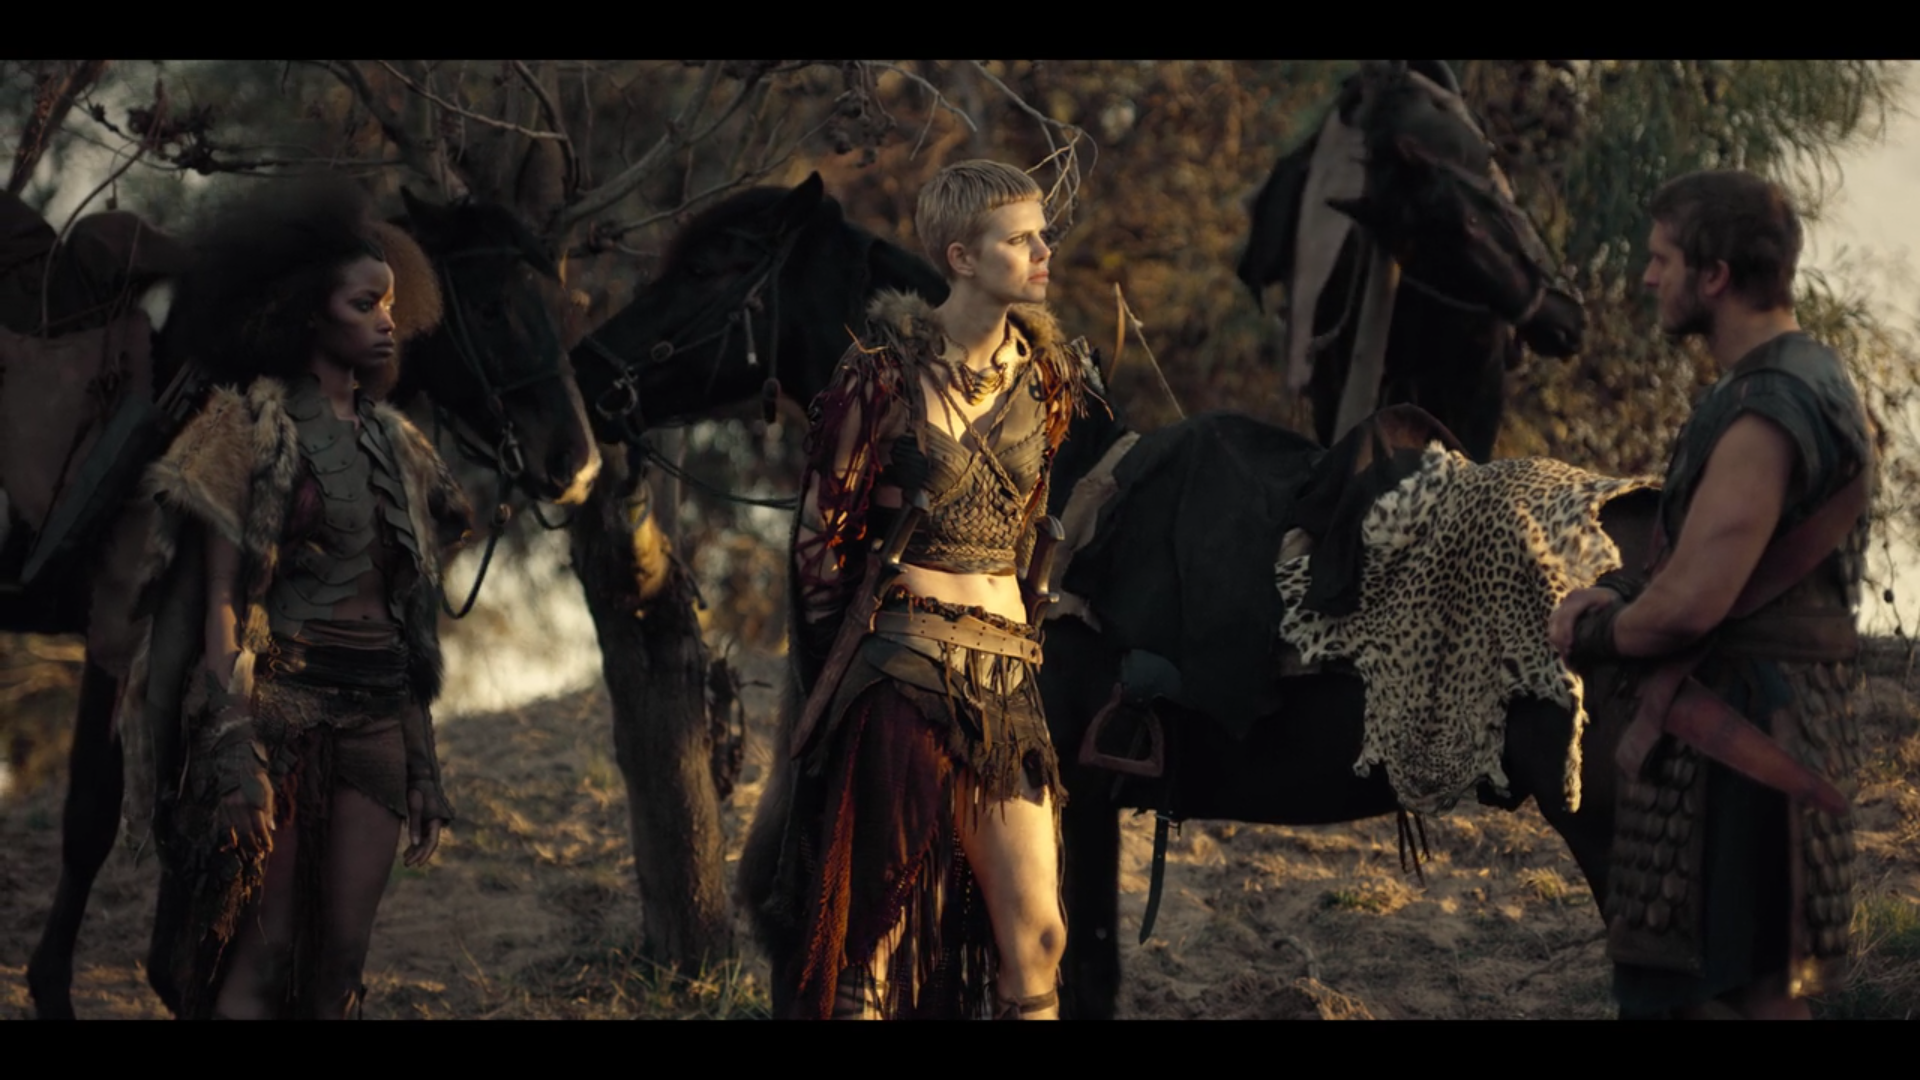 """Figure 1: Paris (right) converses with the Amazon queen Penthesilea (left) while her lieutenant Ainia looks on in the episode """"Battle on the Beach."""" The difference between the Trojan prince and the women warriors is made clear visually by the animal skins that both Amazons wear and use as padding on their mounts, as compared to the tooled leather of Paris' garb. Credit: BBC/Netflix."""